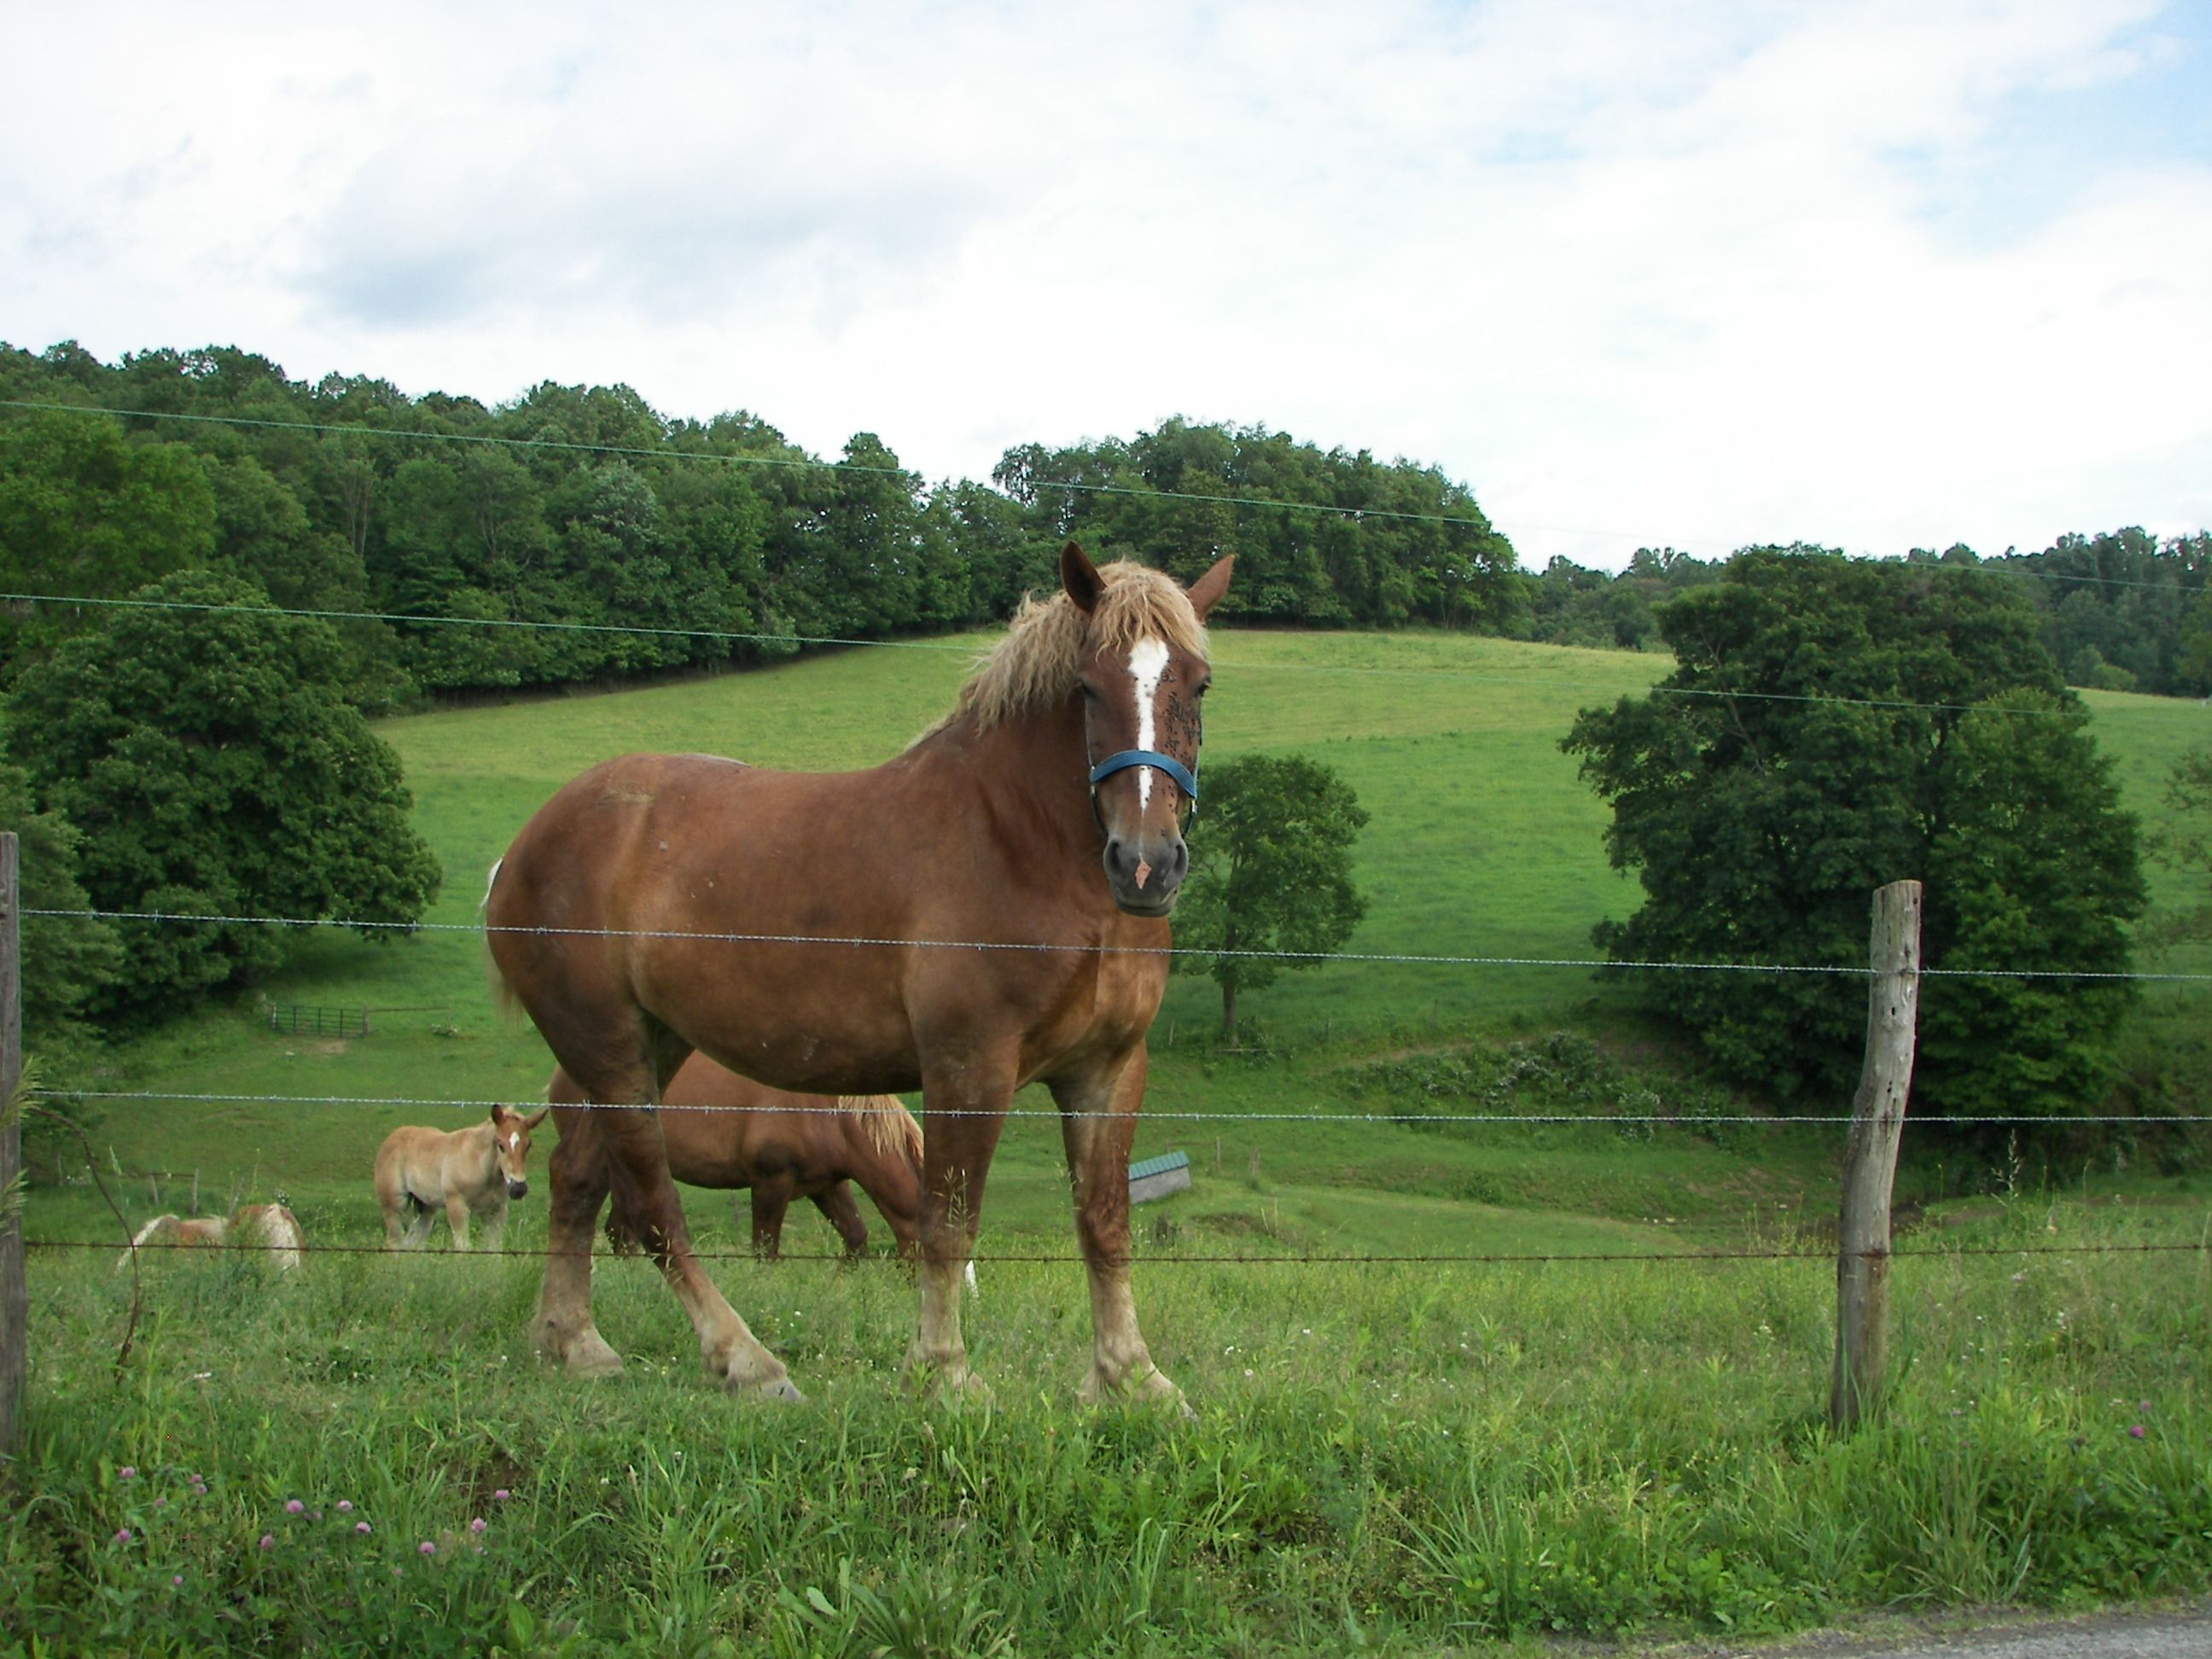 BEAUTIFUL HORSE IN AMISH COUNTRY...